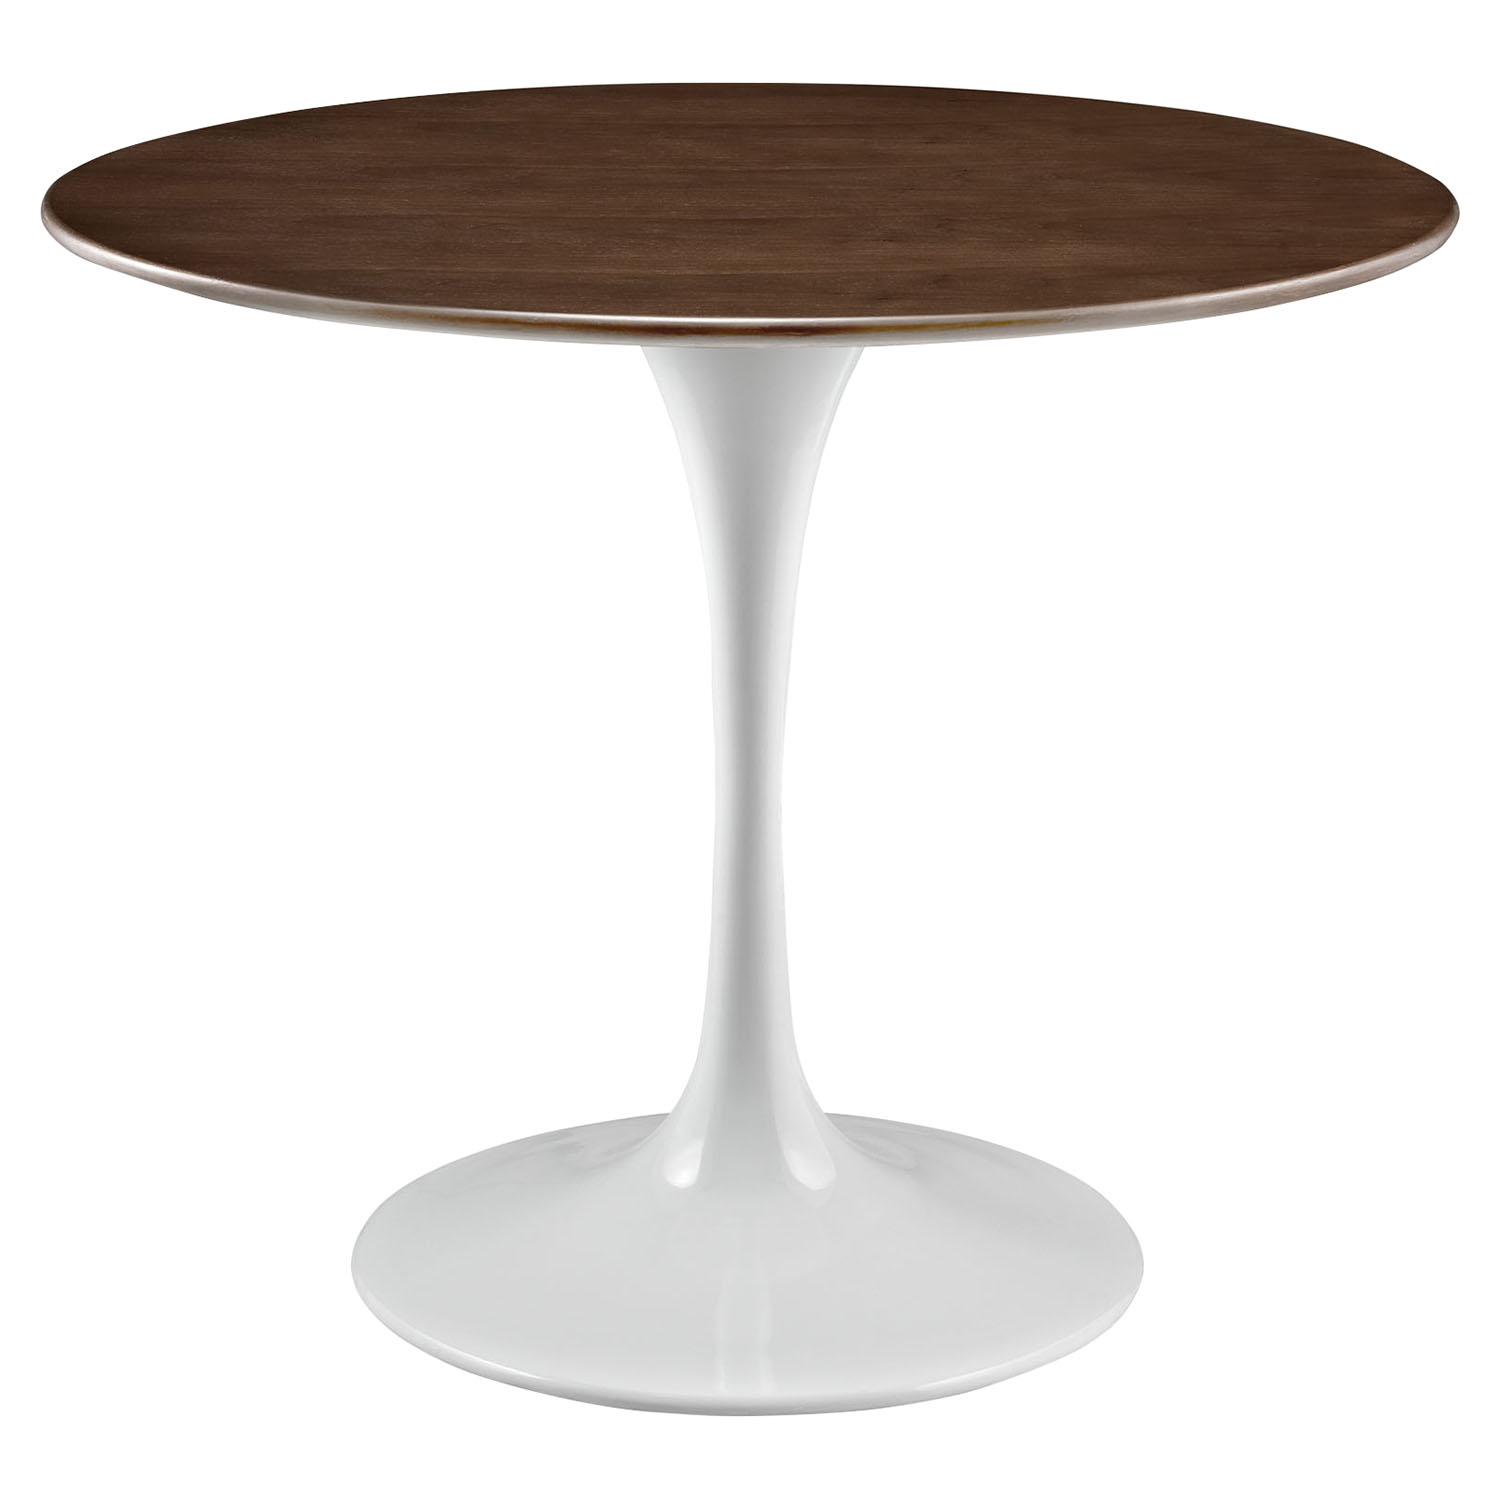 "Lippa 36"" Walnut Dining Table - EEI-1136-WAL"